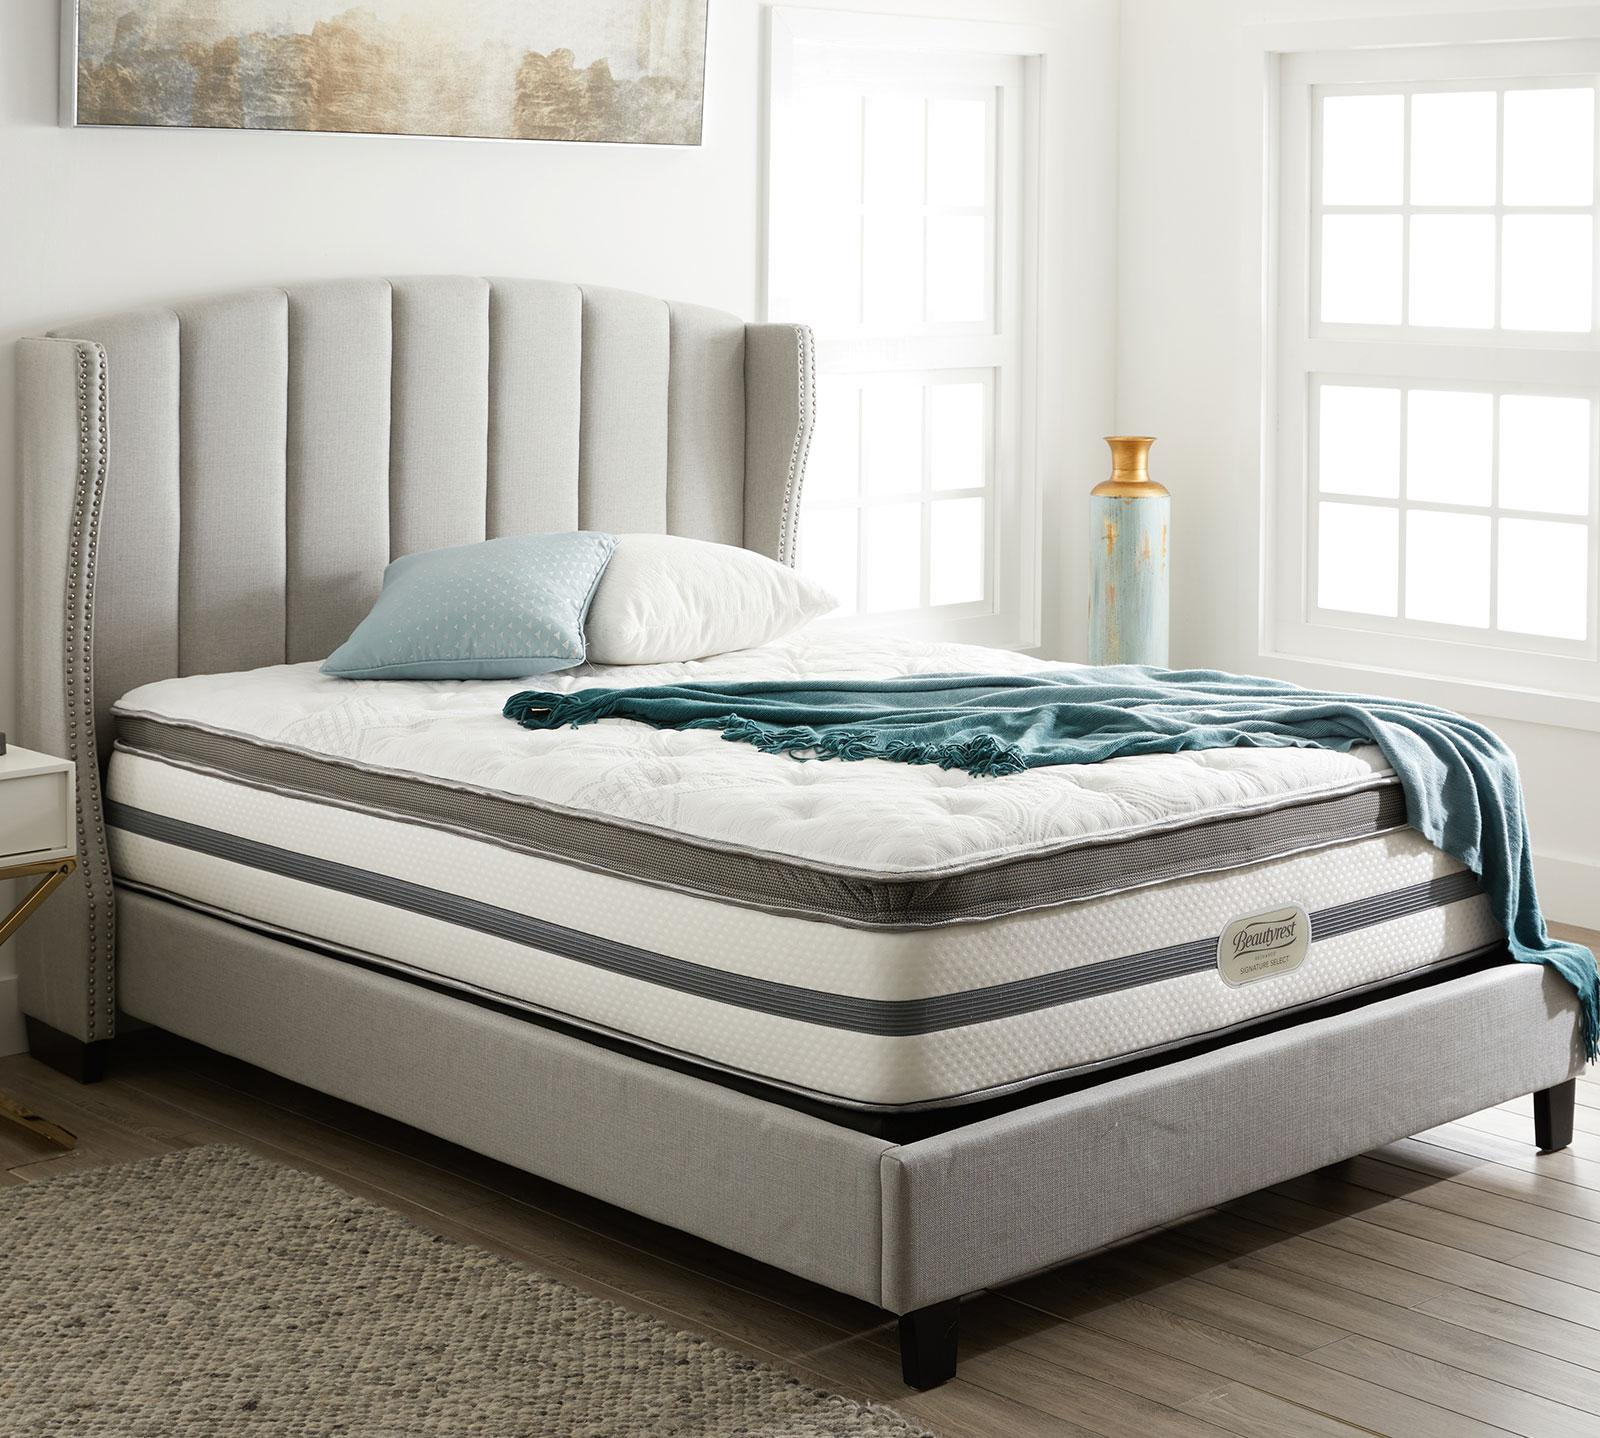 beautyrest recharge box spring. Previous Beautyrest Recharge Box Spring A